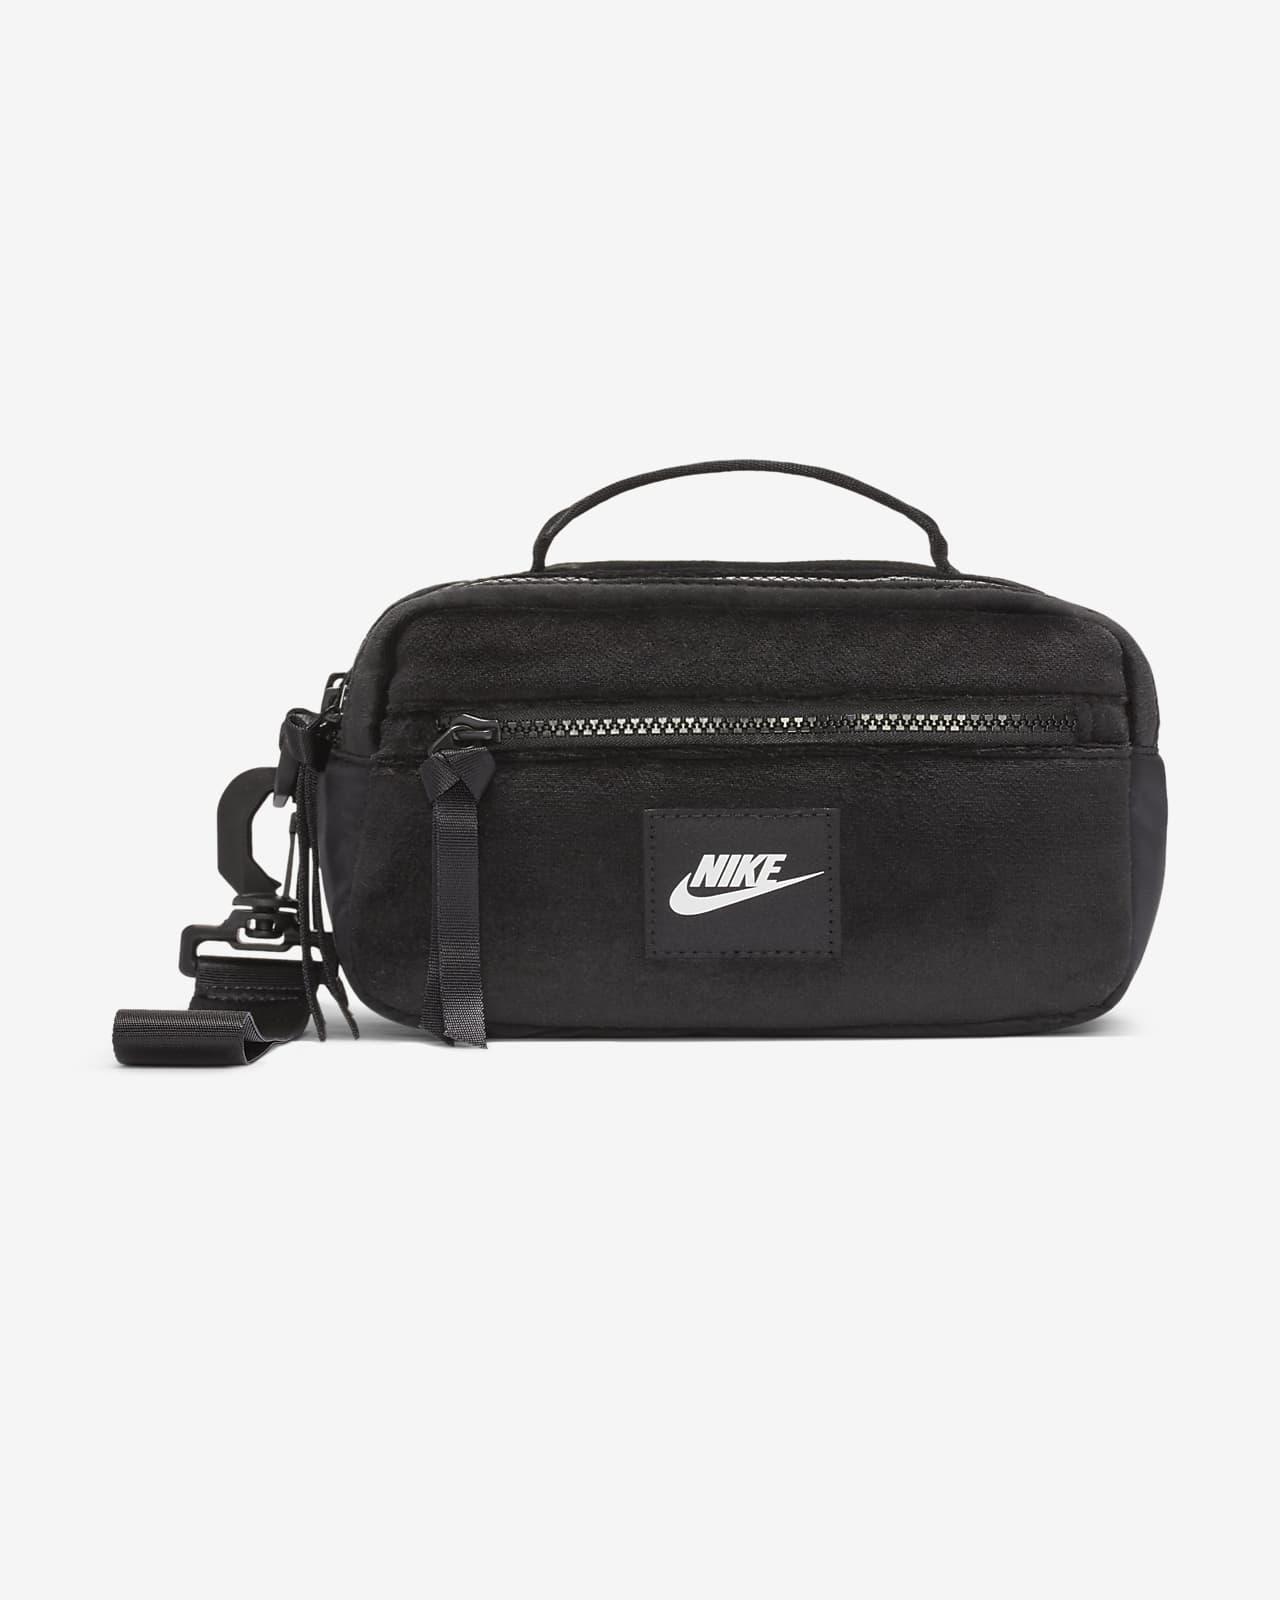 Sac utilitaire pour l'hiver Nike Sportswear